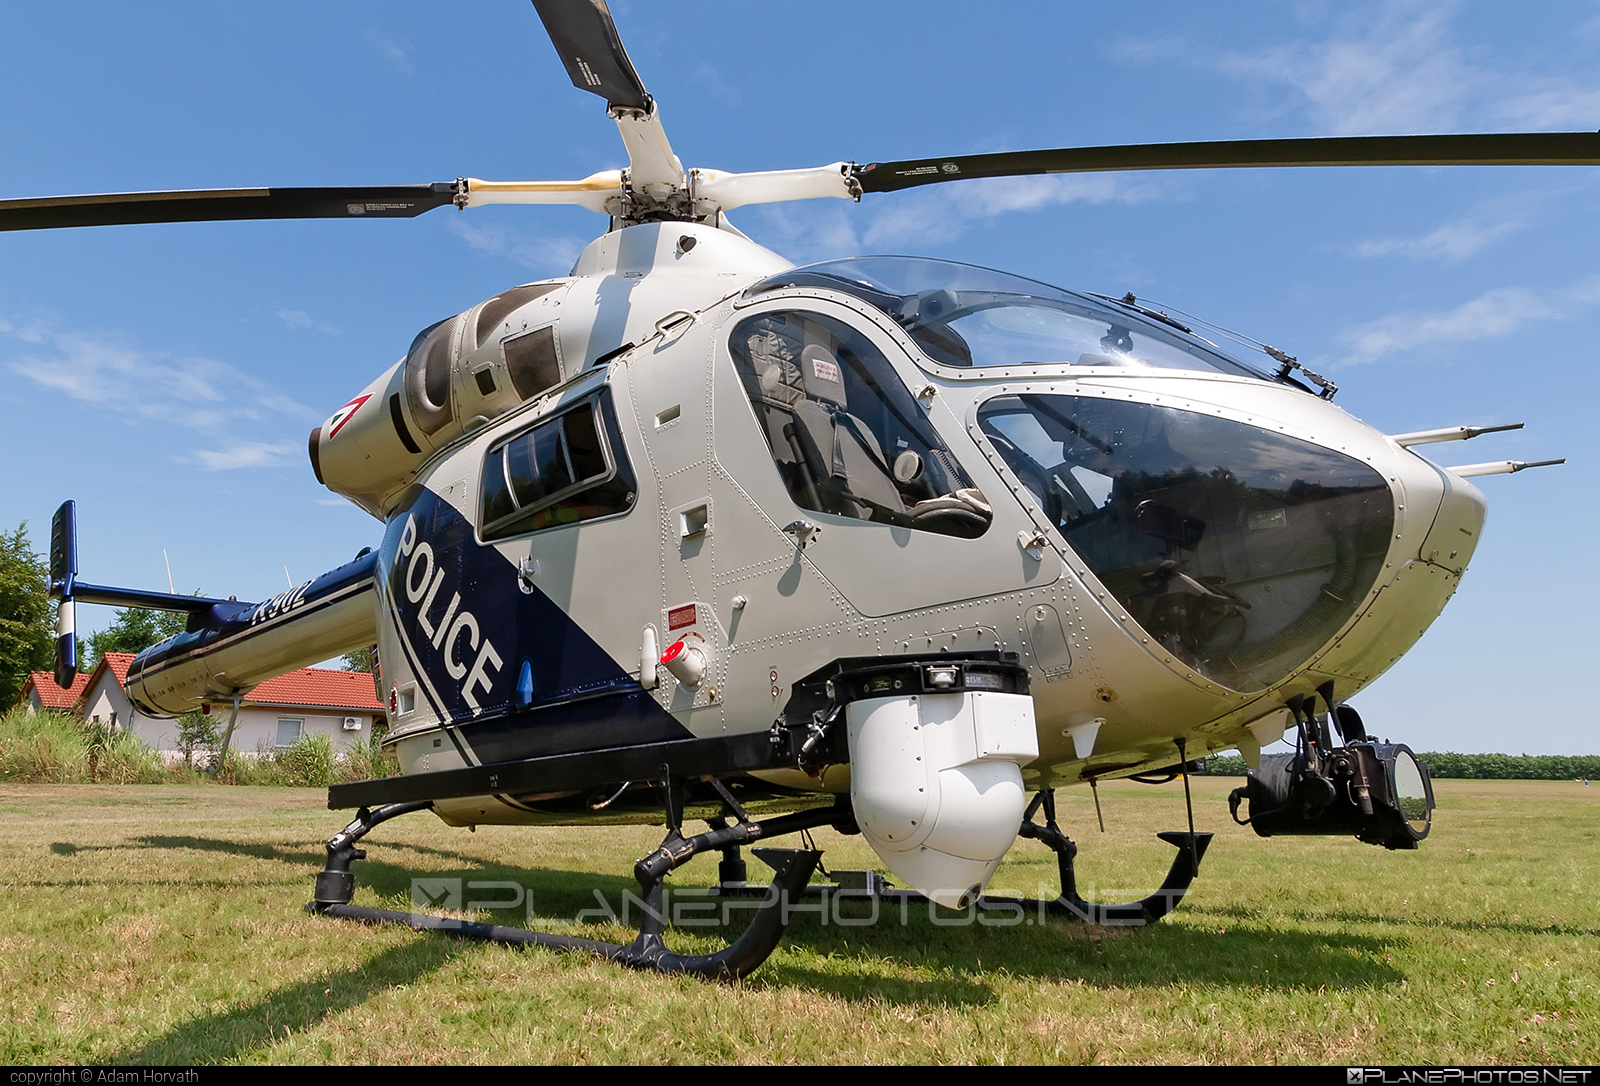 MD Helicopters MD-902 Explorer - R902 operated by Rendőrség (Hungarian Police) #hungarianpolice #mdhelicopters #rendorseg